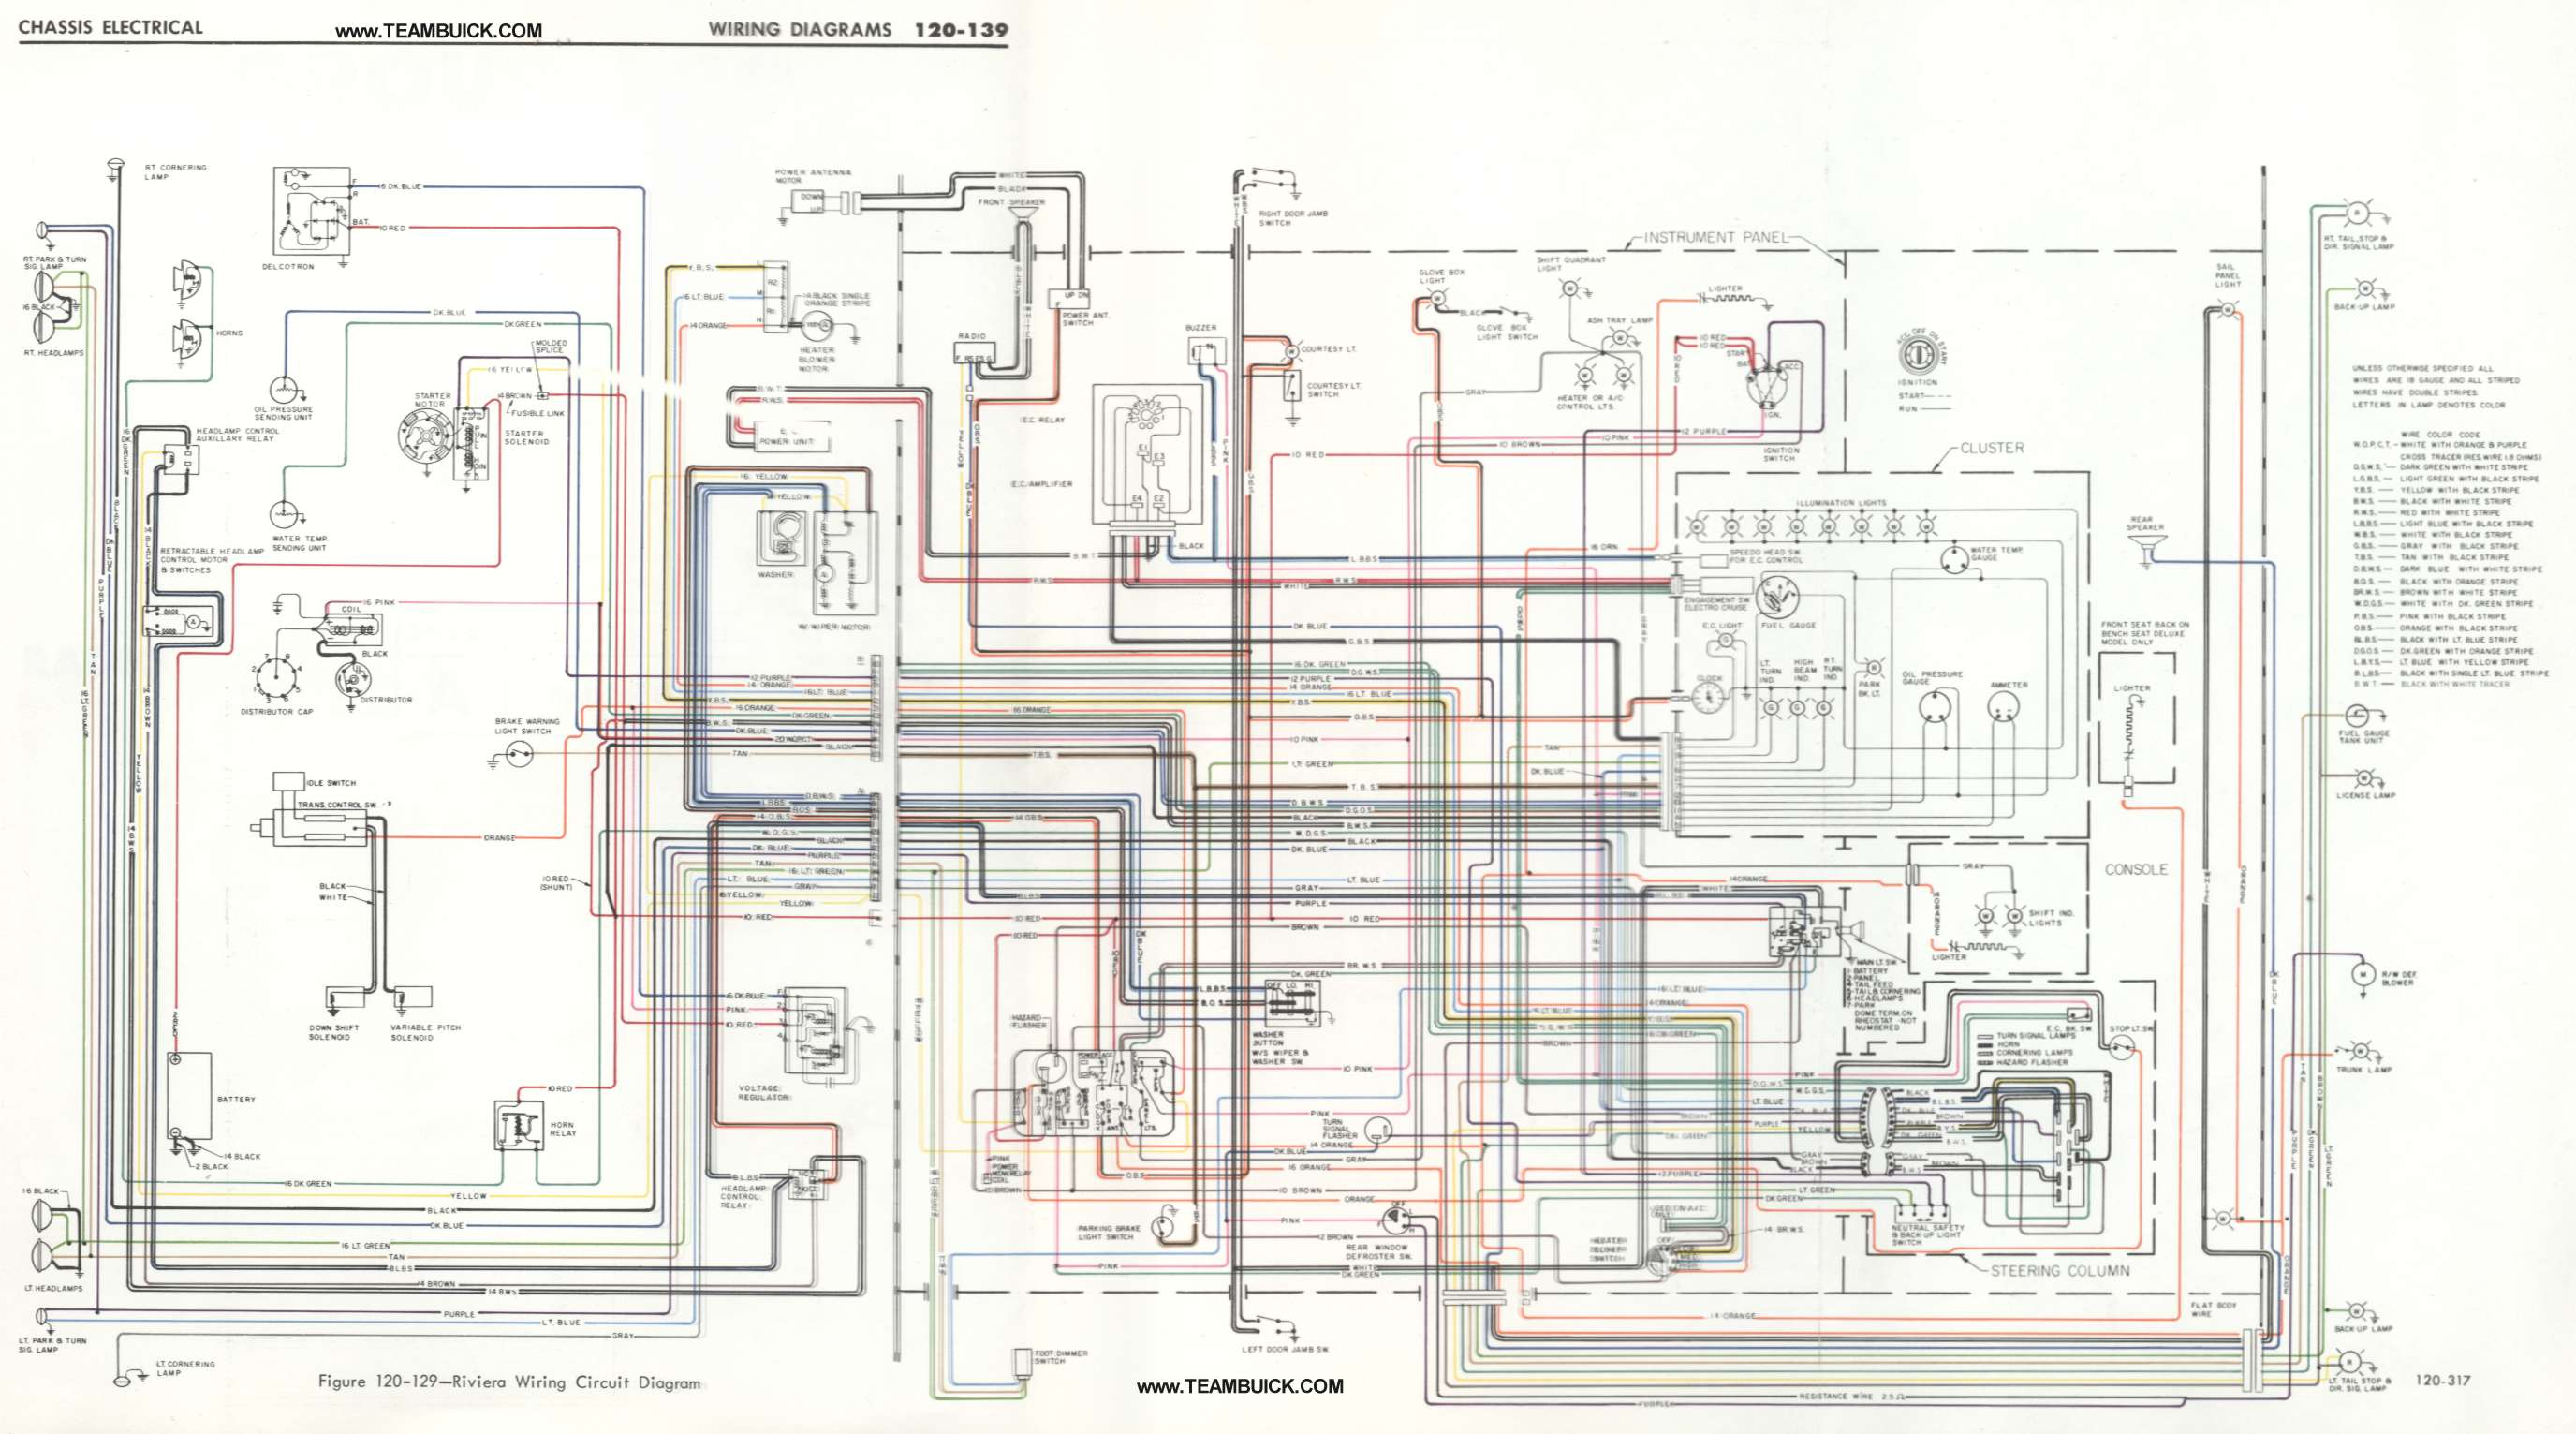 1967 ford fairlane wiring diagram the best wiring diagram 2017 1967 Fairlane Instrument Panel Wiring Diagram 1967 fairlane wiring diagram